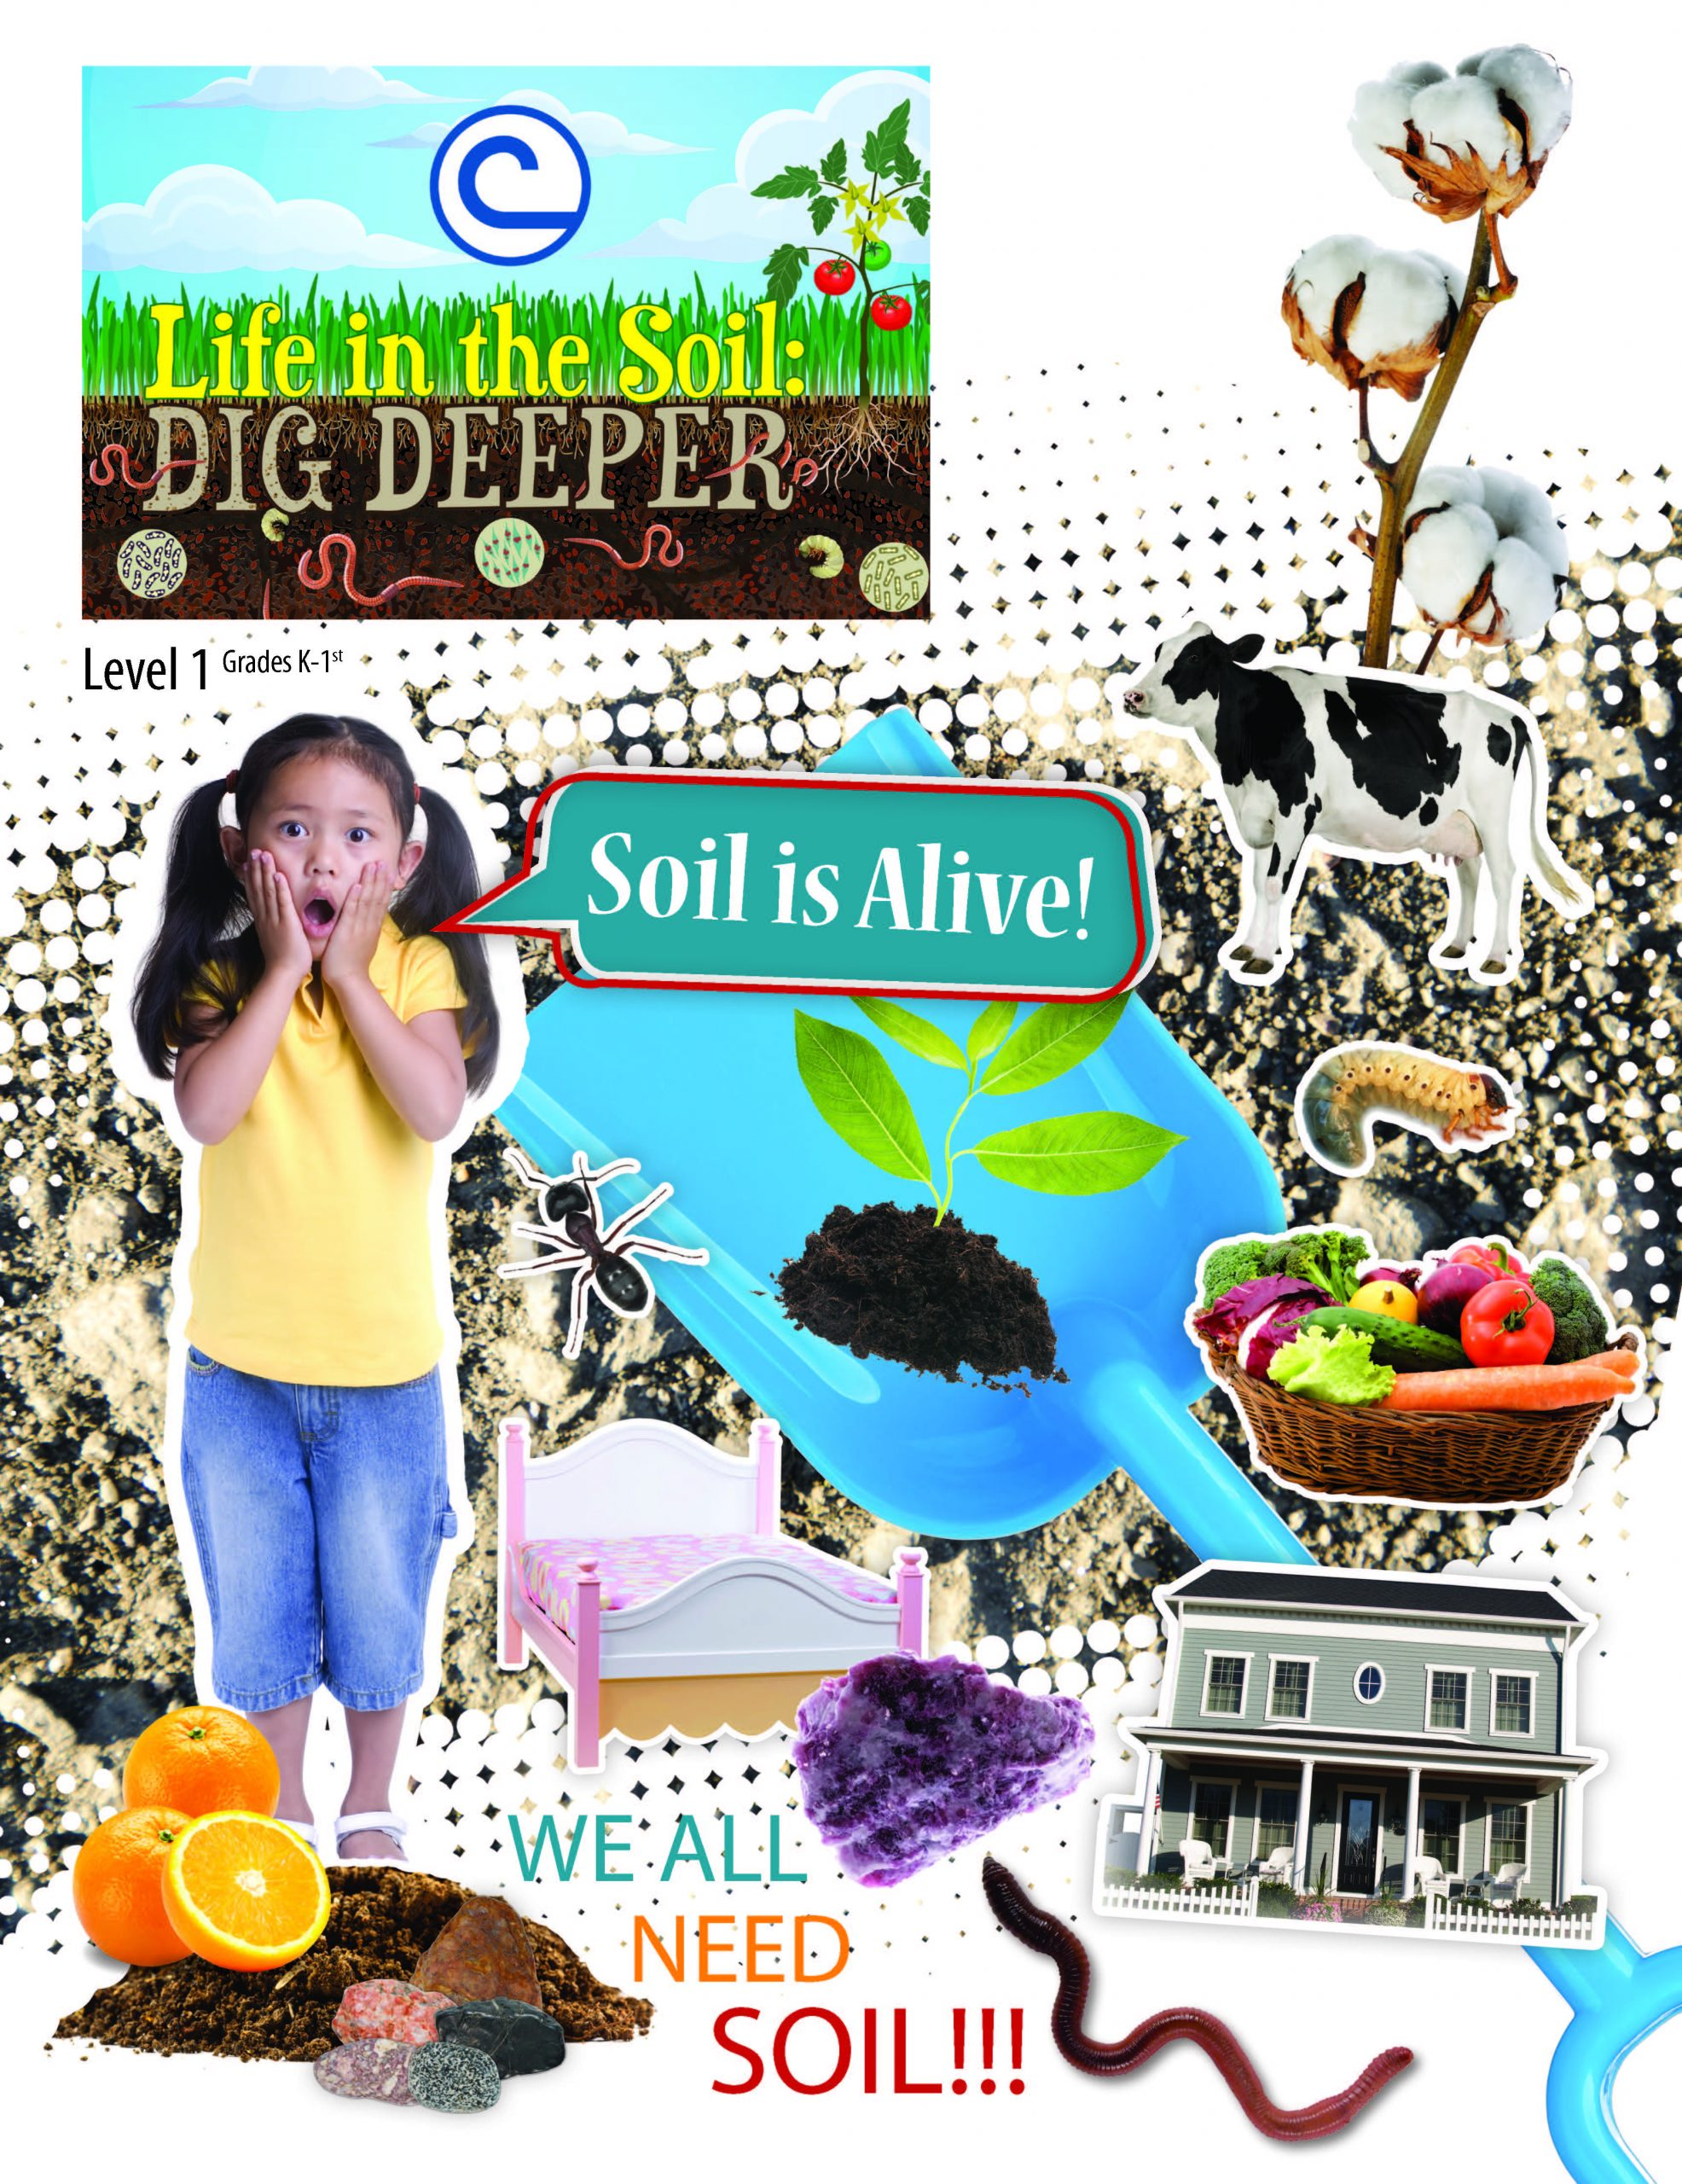 Life in the Soil: Dig Deeper Level 1 (Grades K-1)